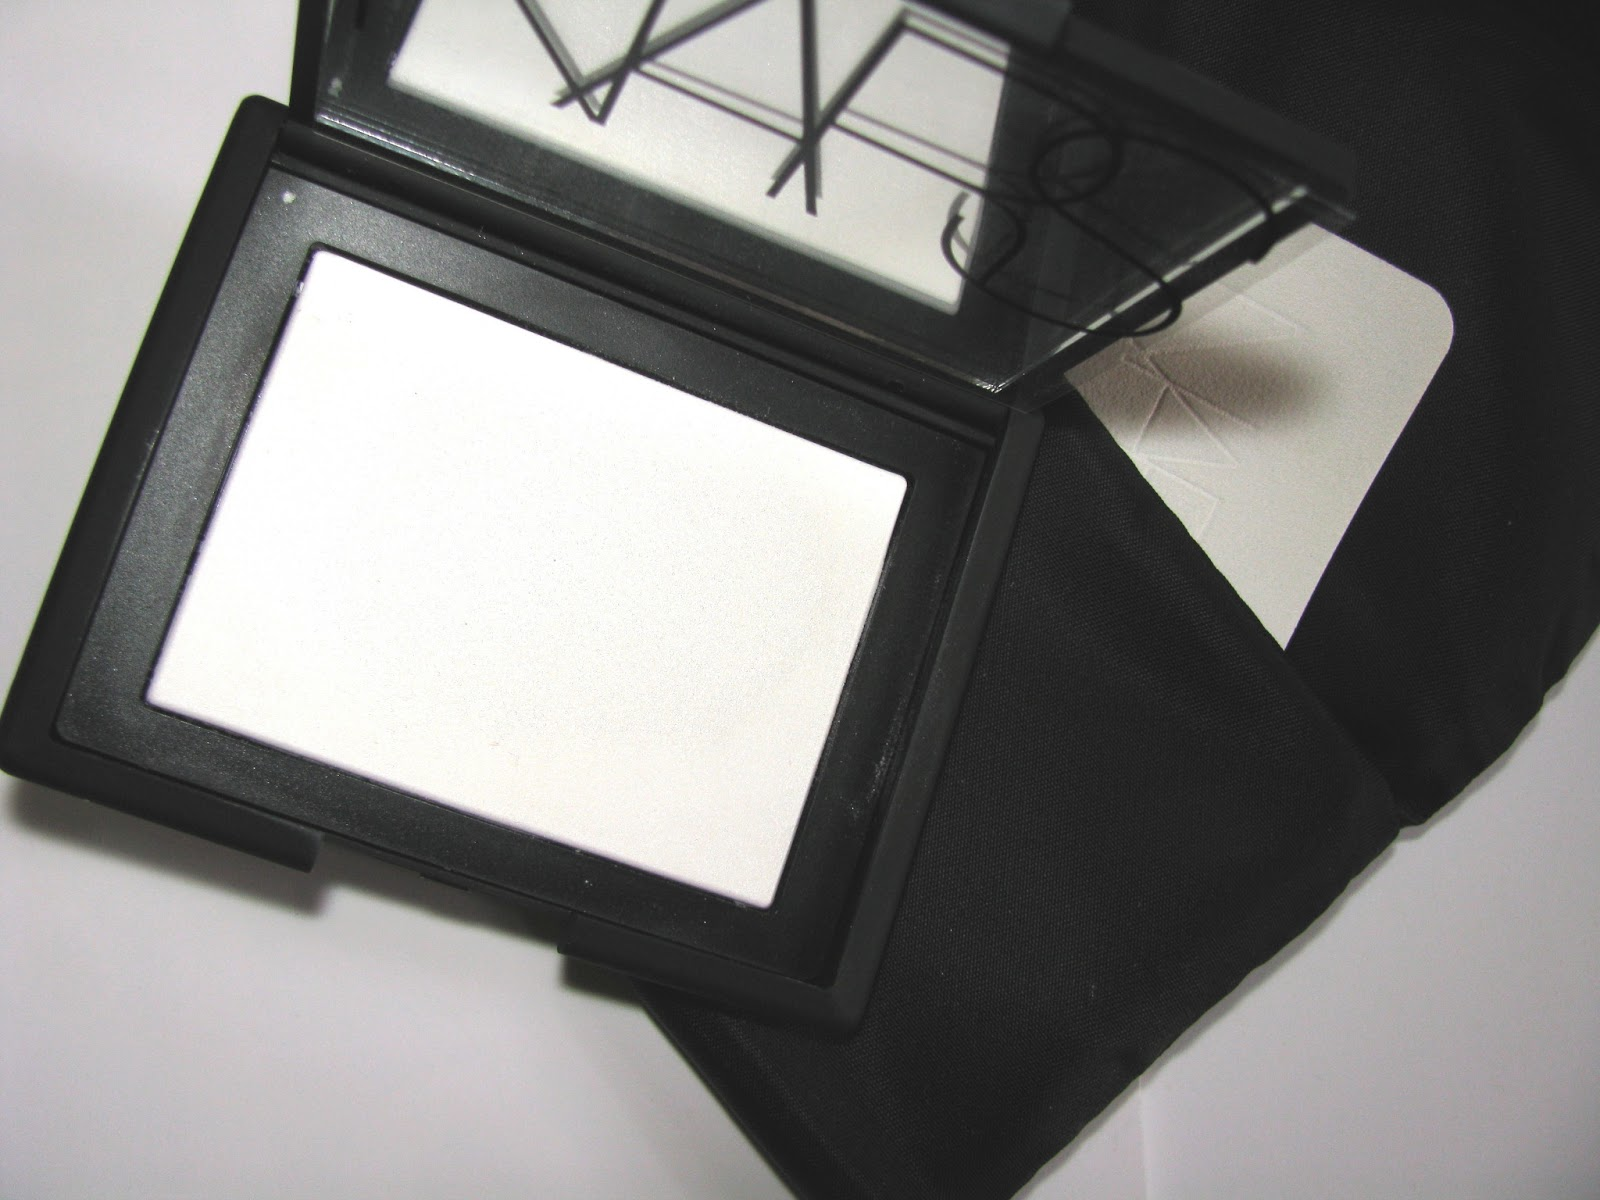 the beauty alchemist nars light reflecting setting powder. Black Bedroom Furniture Sets. Home Design Ideas